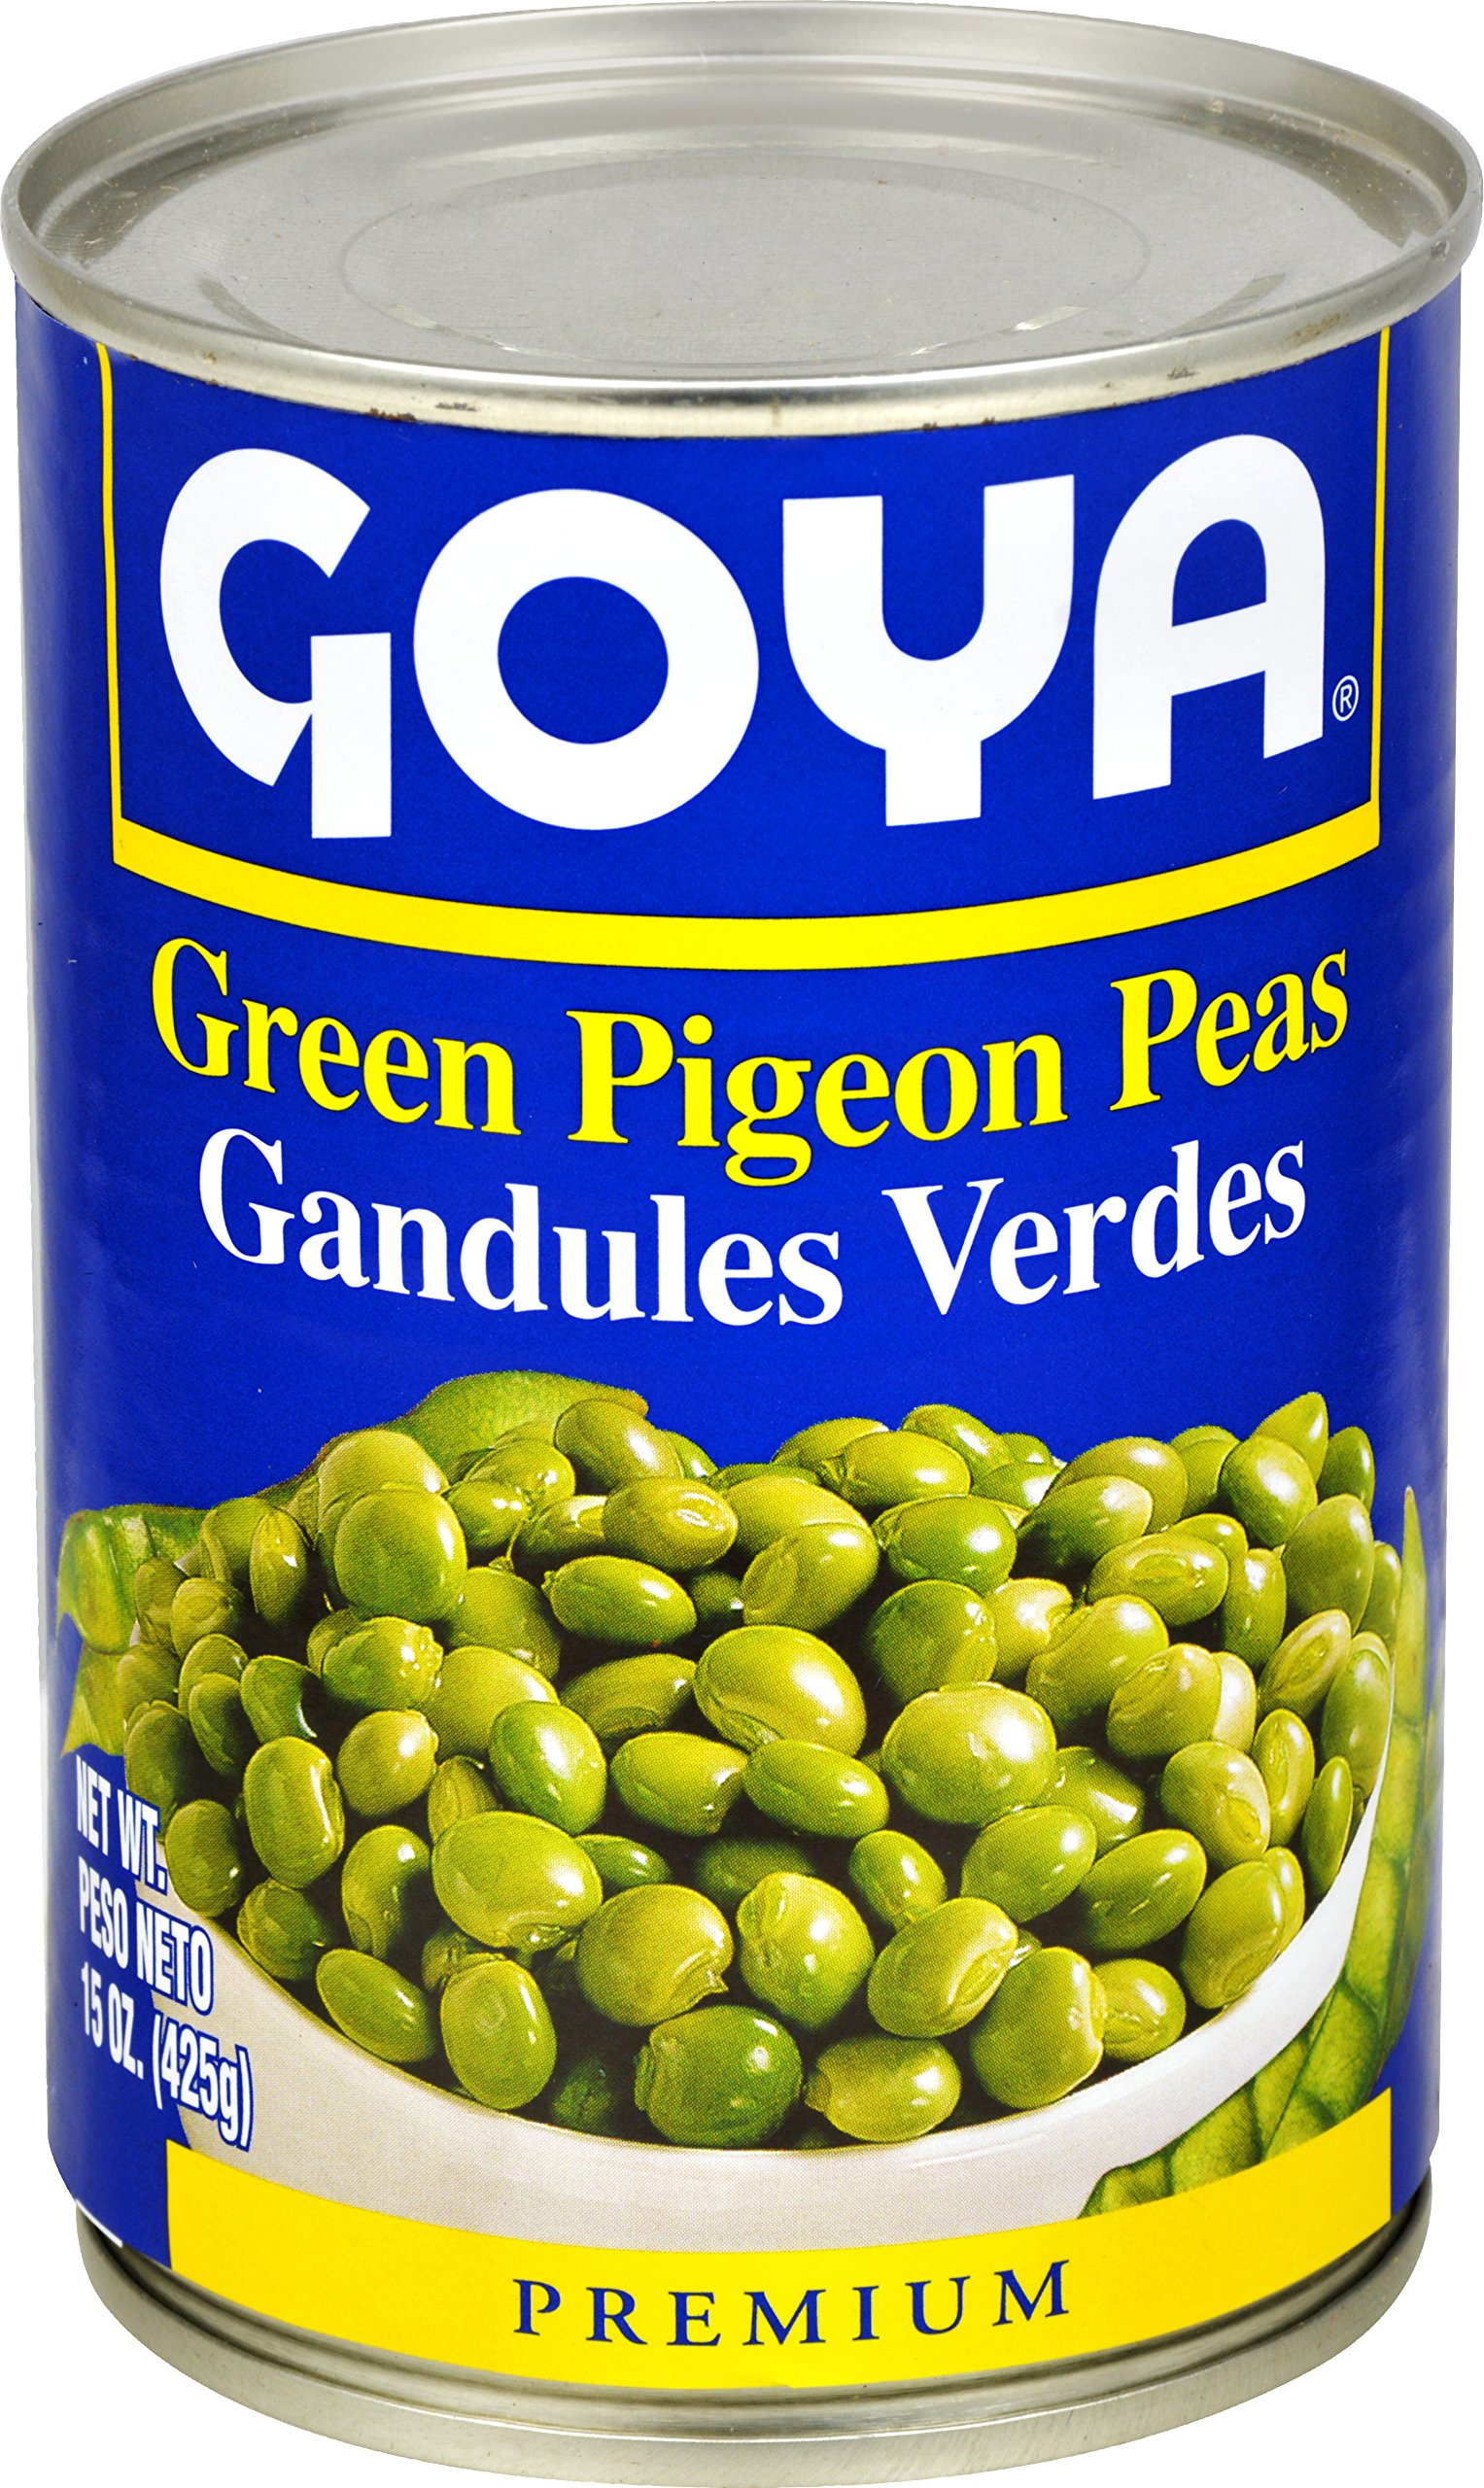 Goya Foods Green Pigeon Peas in Can, 15-Ounce (Pack of 24)